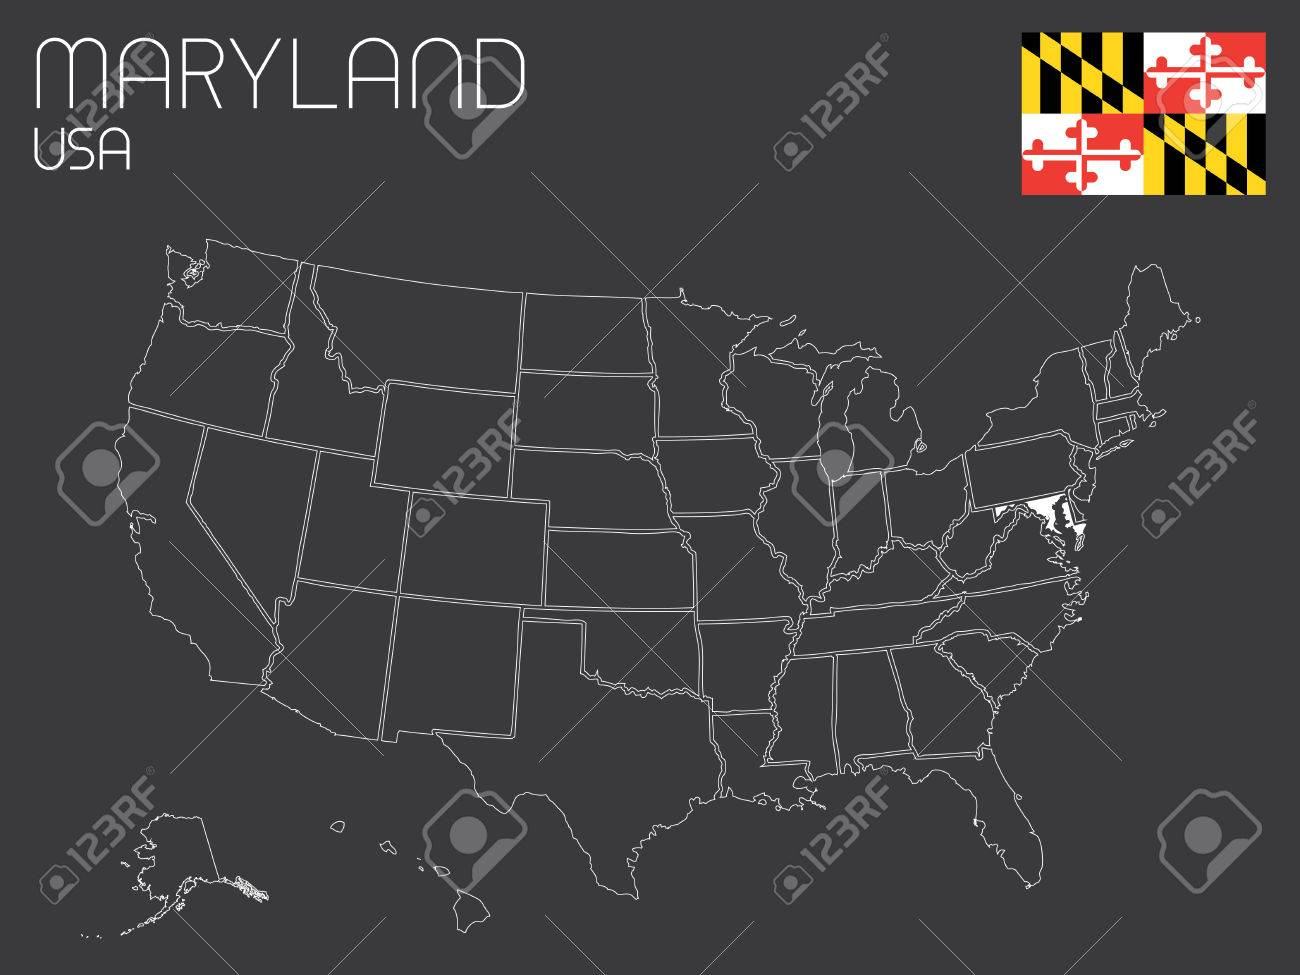 Maryland Map Fotolipcom Rich Image And Wallpaper Maryland MD - Us map maryland state